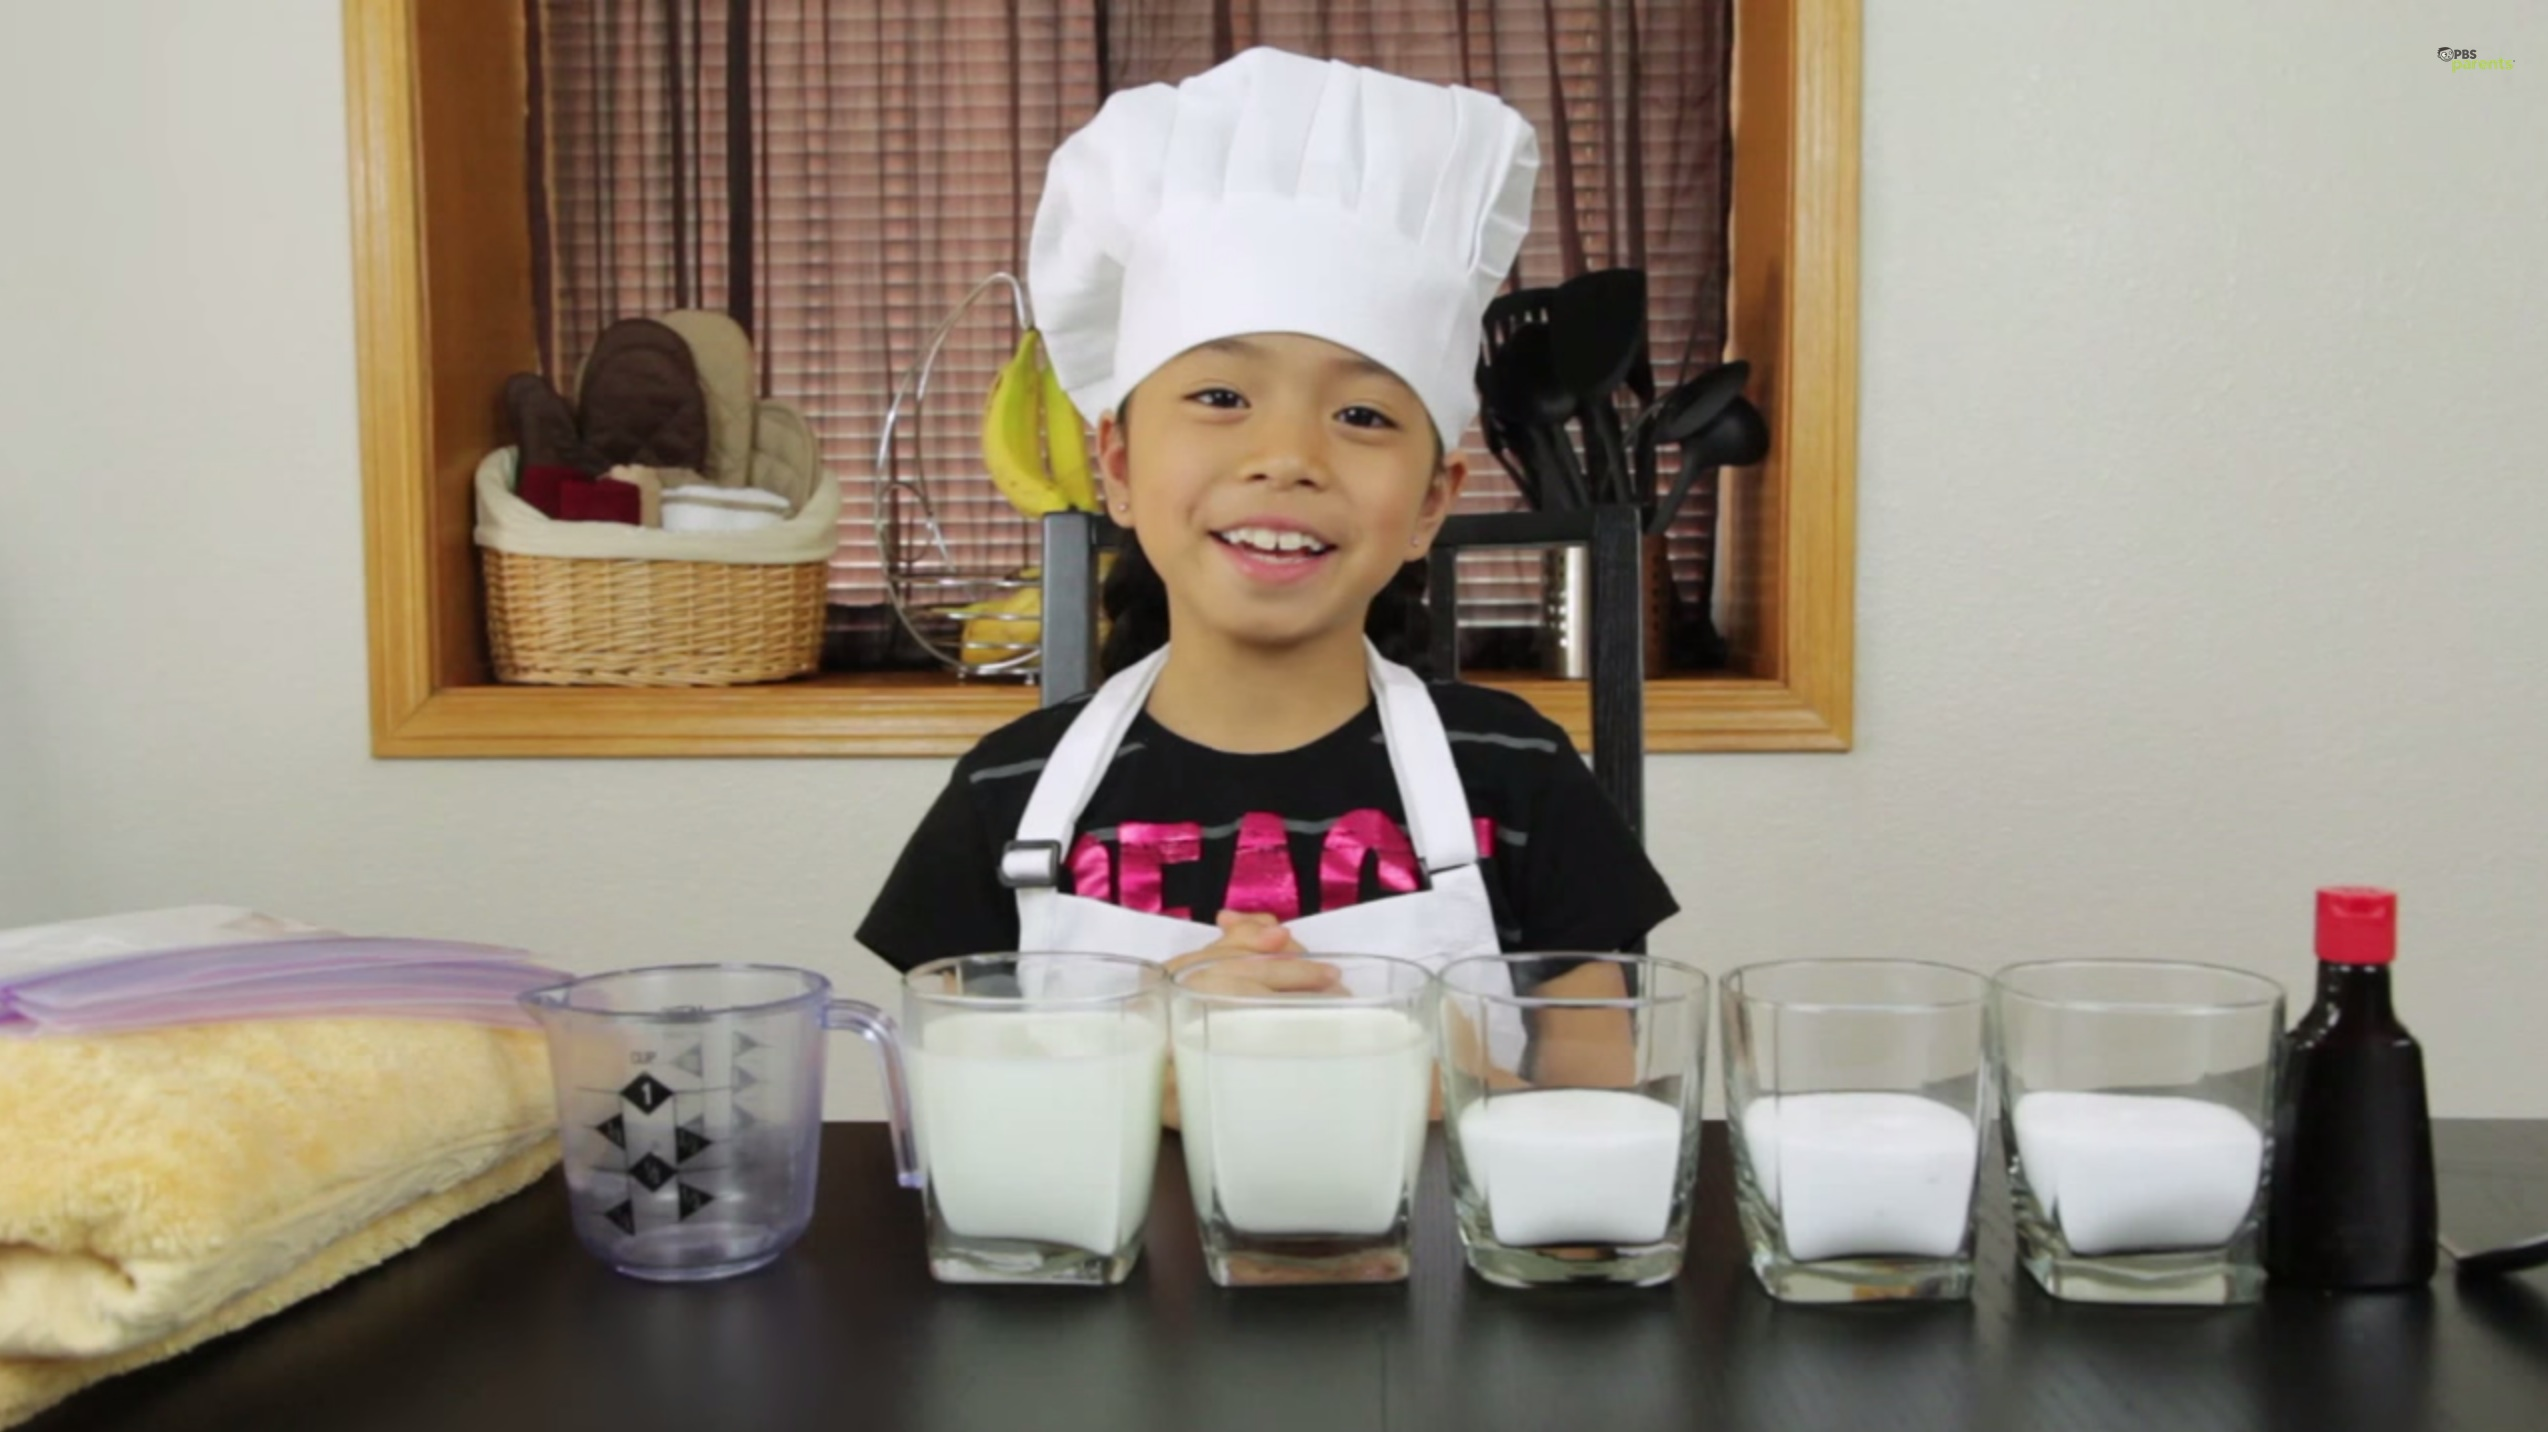 2 new YouTube channels for kids that are smart, fun, and free